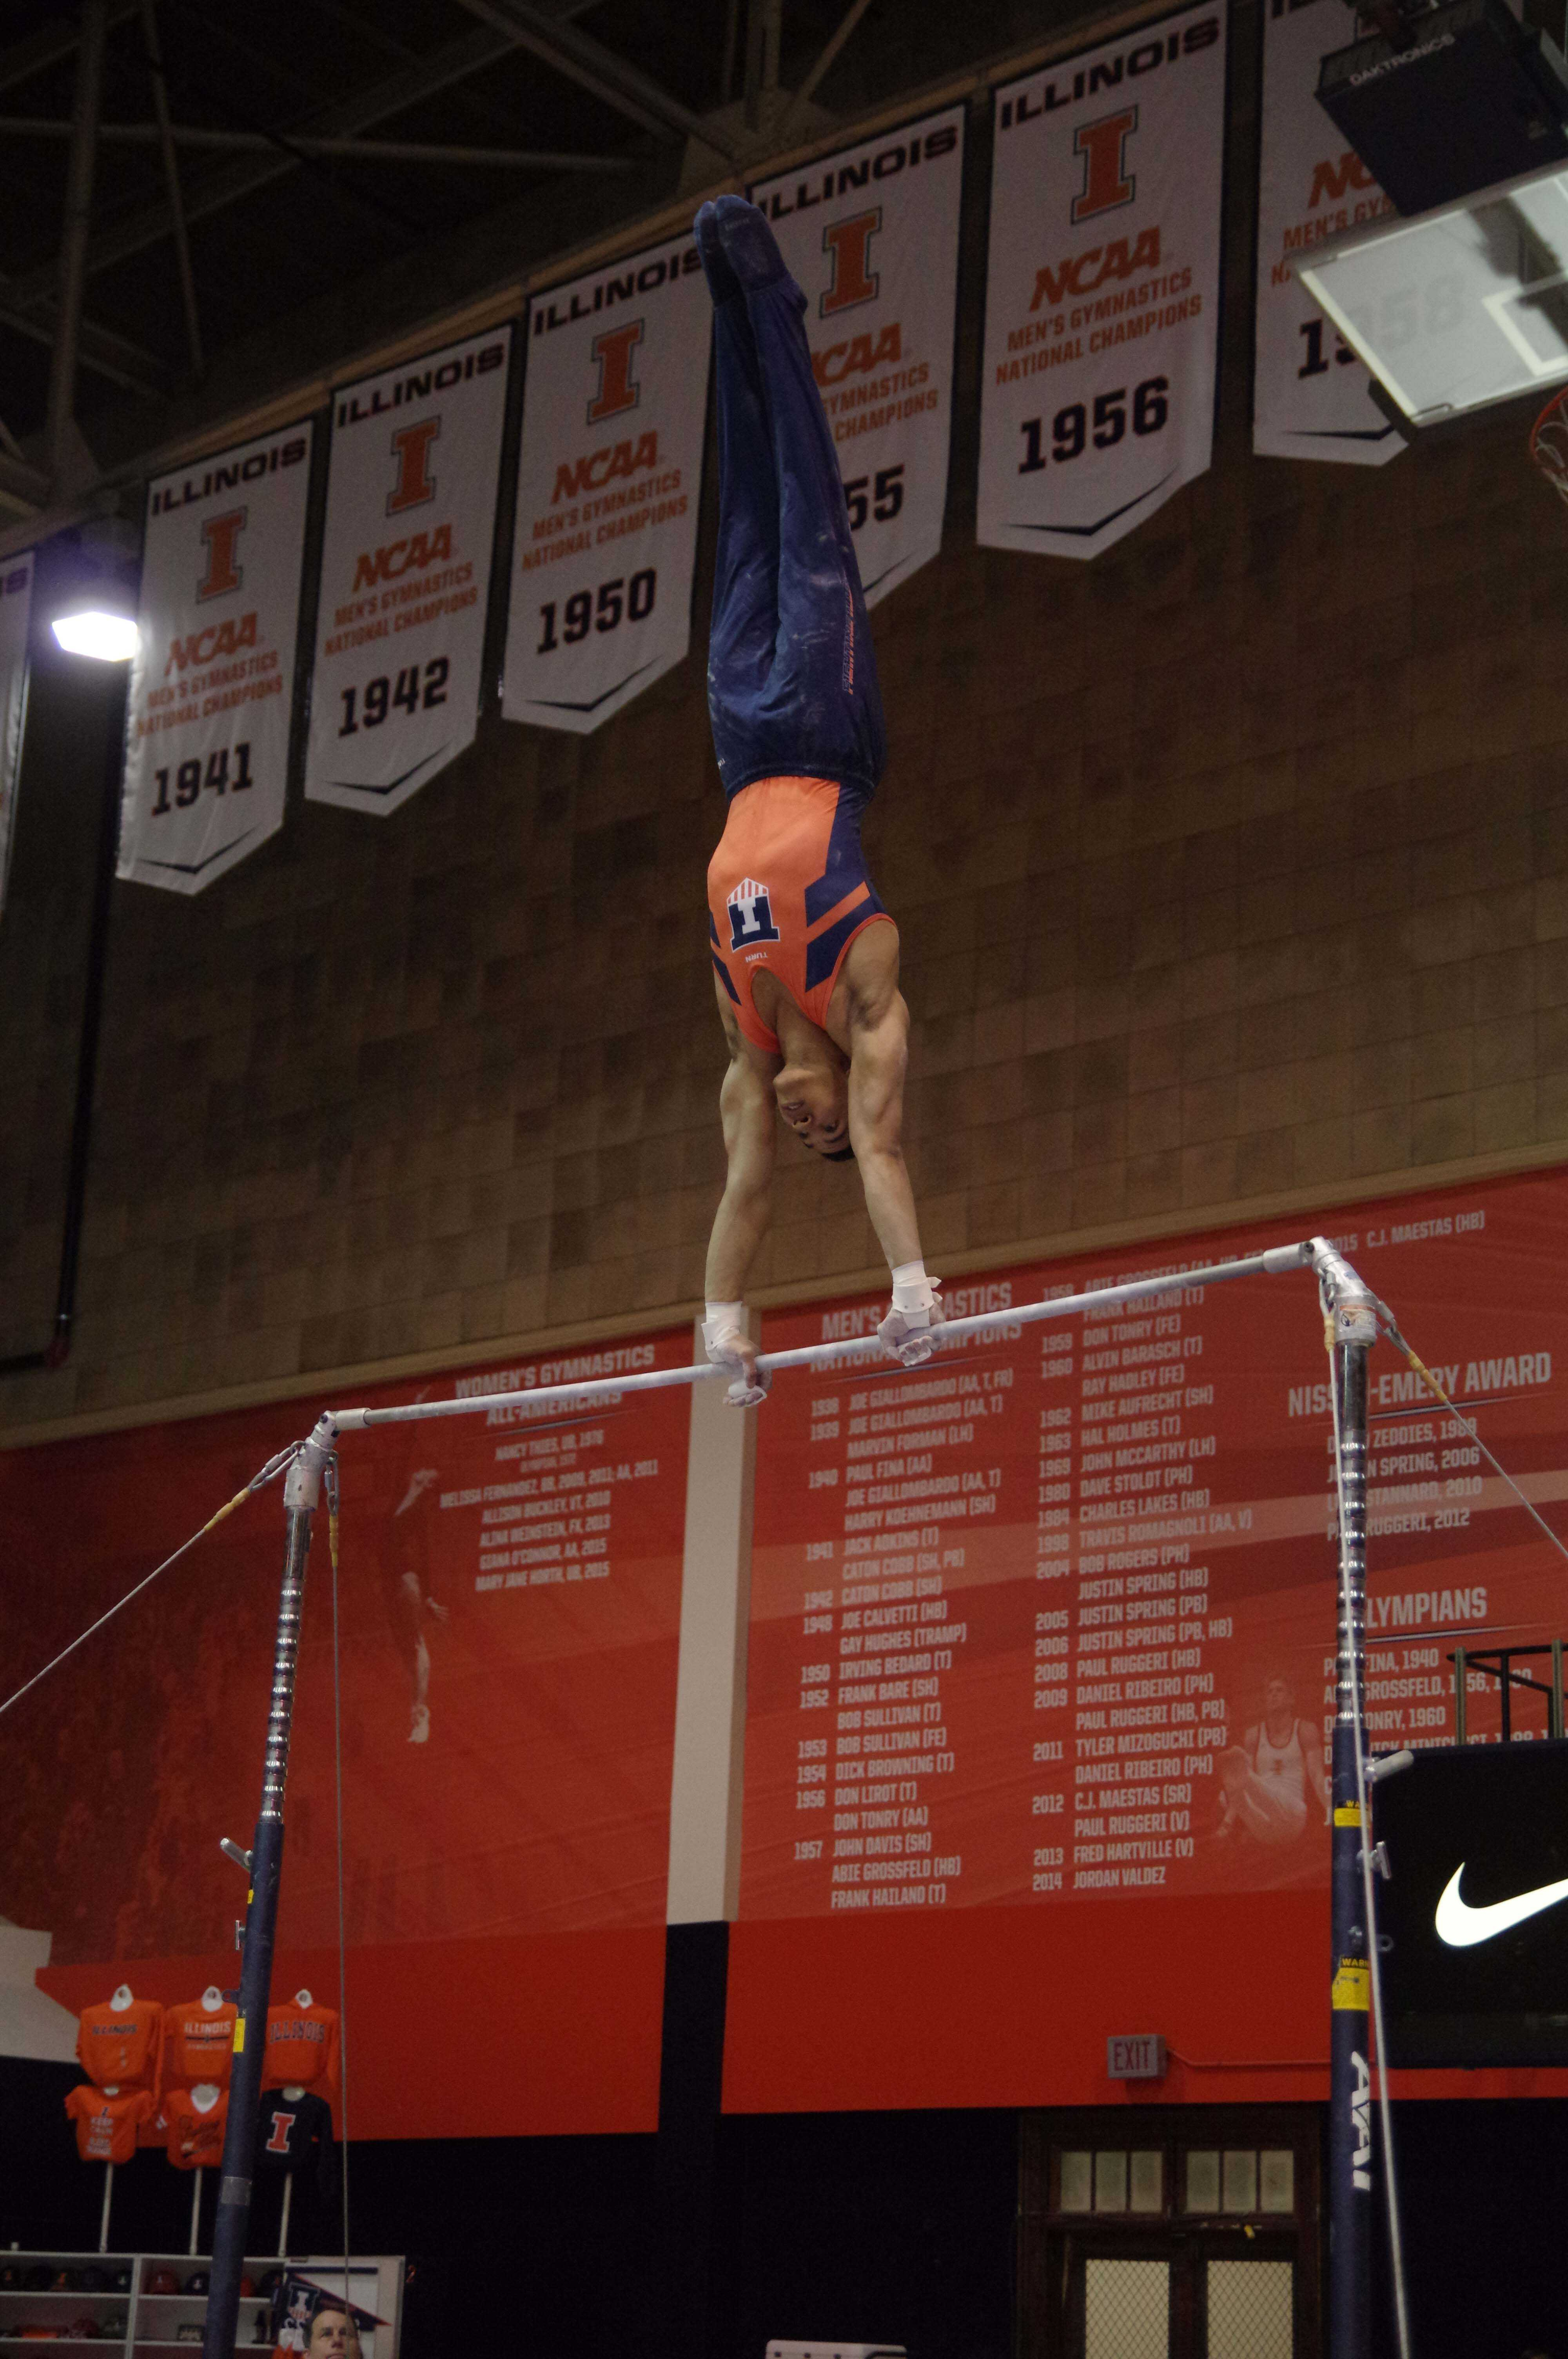 Illinois' Chandler Eggleston performs his routine at the meet against Michigan on March 12, 2016.